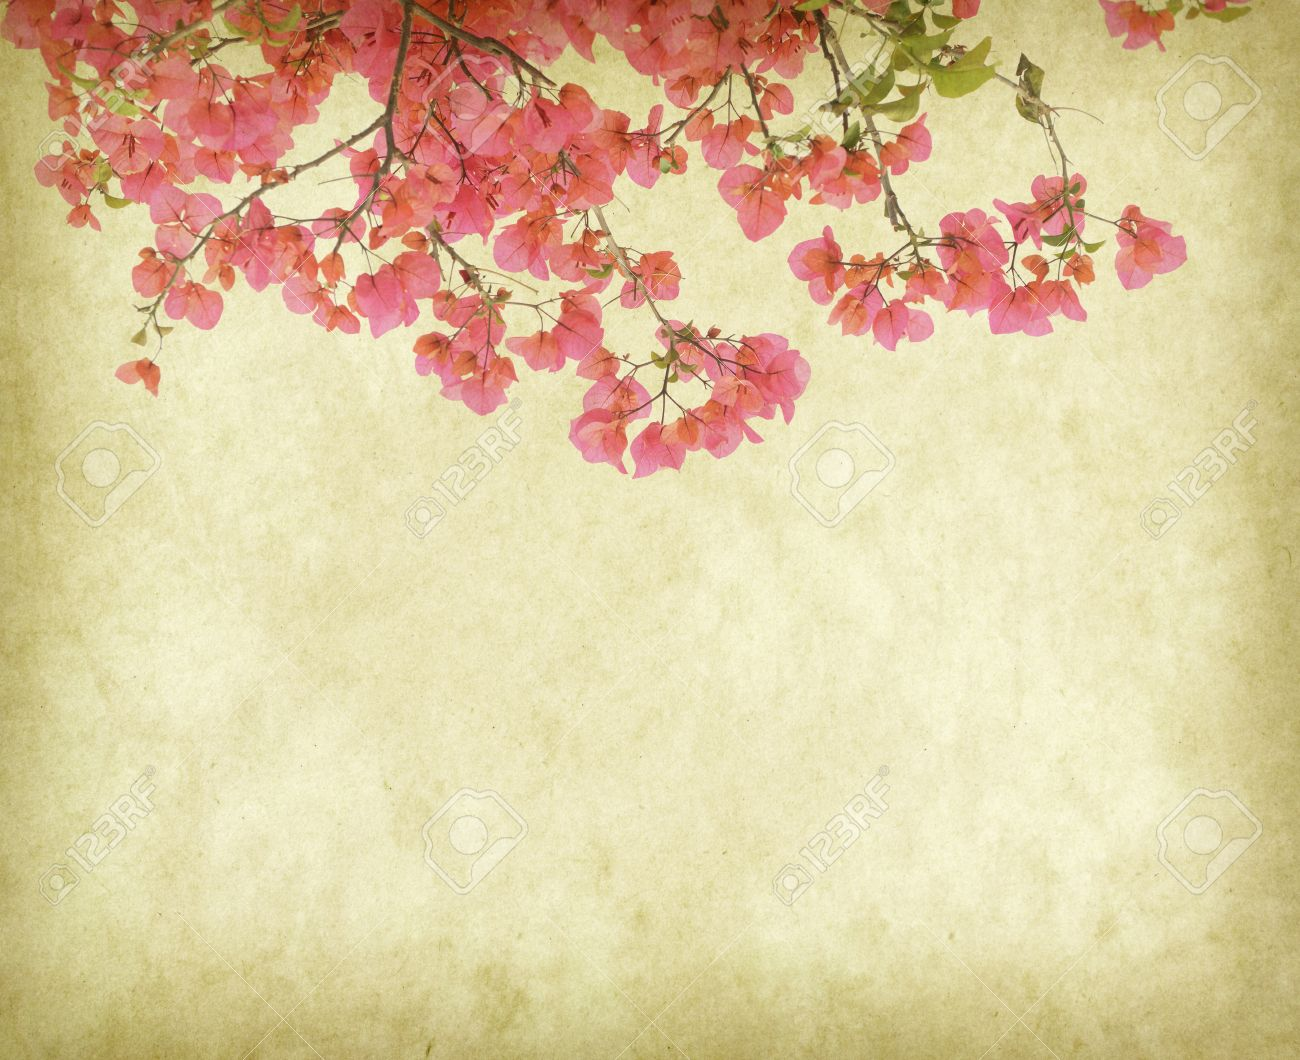 Bougainvillea Wallpaper Vintage Wallpaper Background With Bougainvillea Flowers